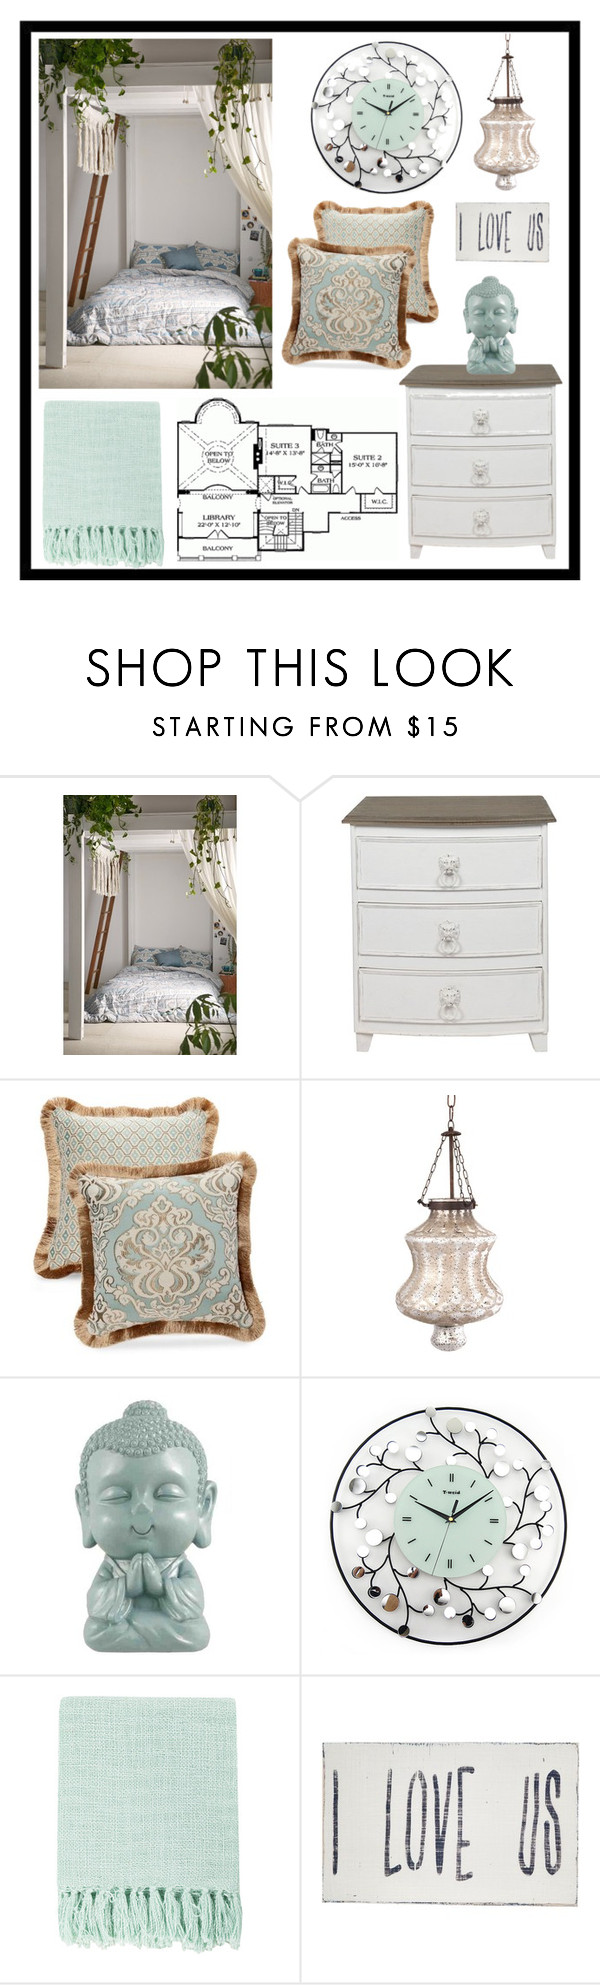 """Bedroom in Mint"" by alynncameron ❤ liked on Polyvore featuring interior, interiors, interior design, home, home decor, interior decorating, Magical Thinking, Home Source International, Occa Maison and Biltmore"